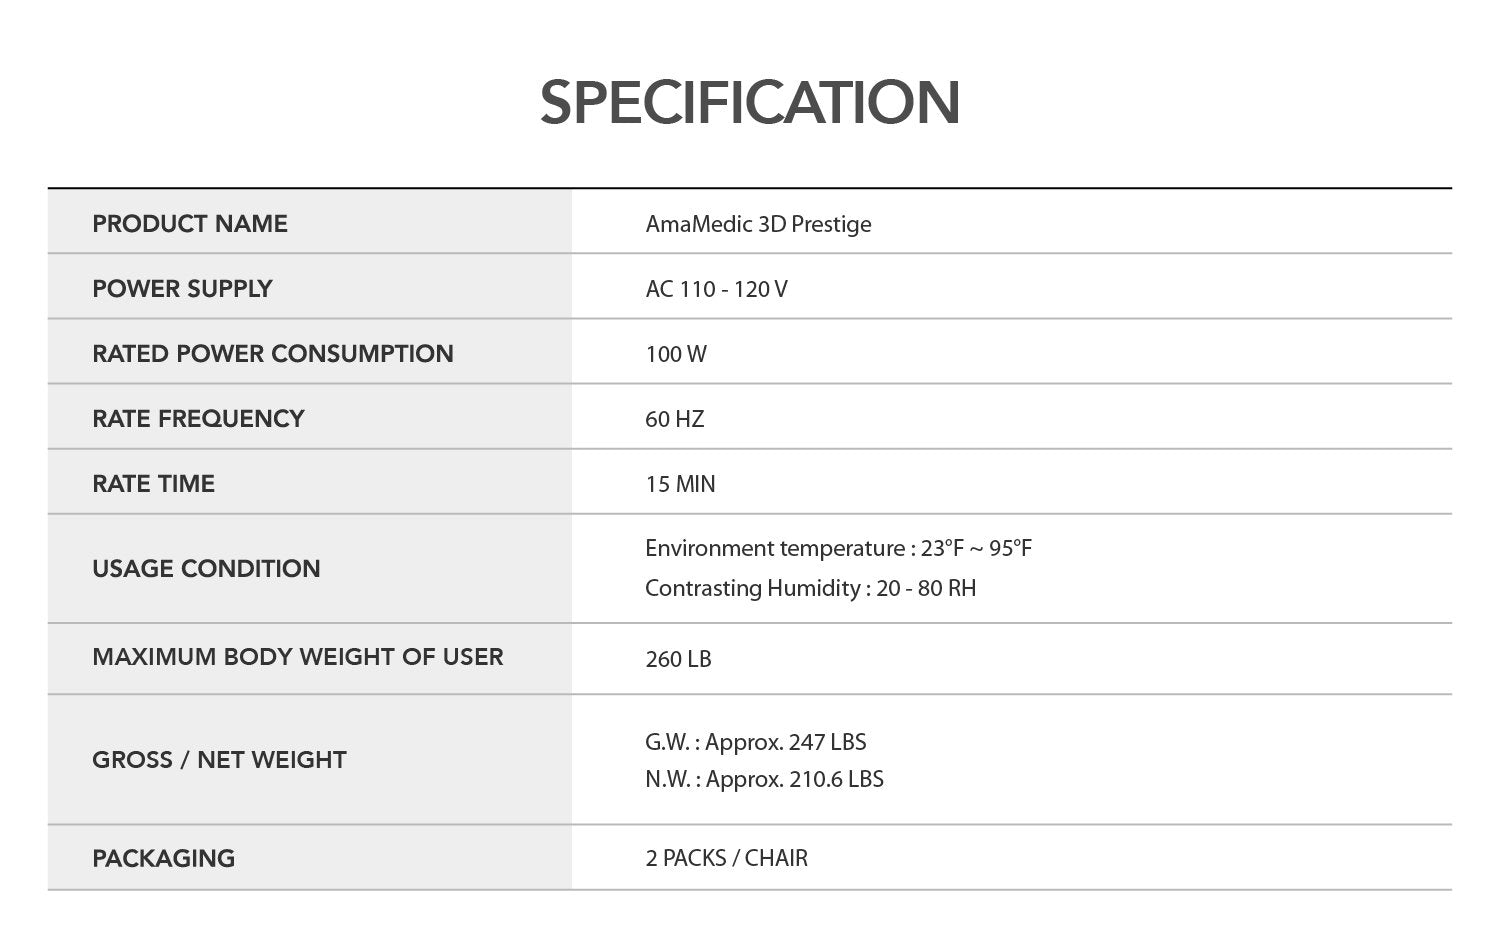 Image of product specifications